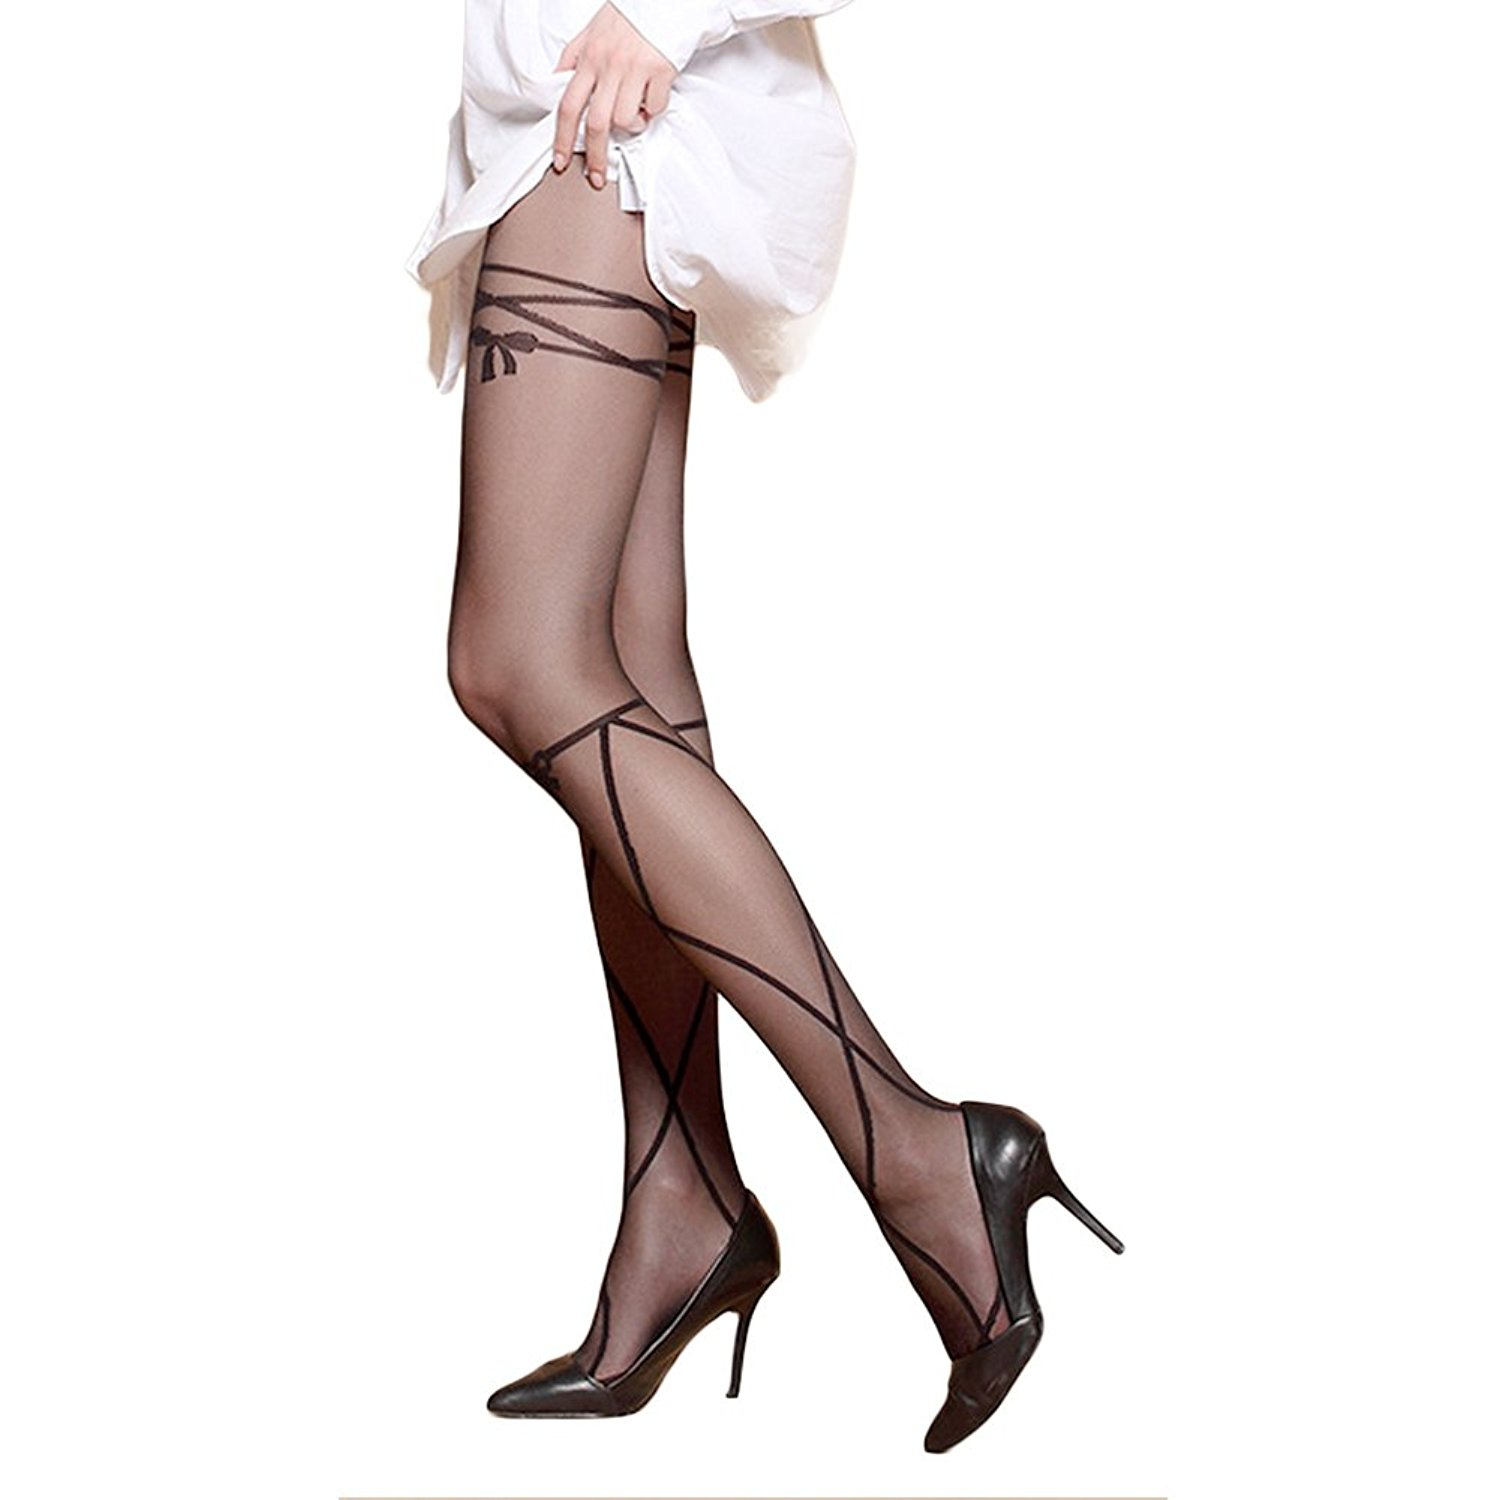 6112d938a47 Get Quotations · Blostirno Women s Sheer to Waist Floral Patterned Tights  Pantyhose Tattoo Tights